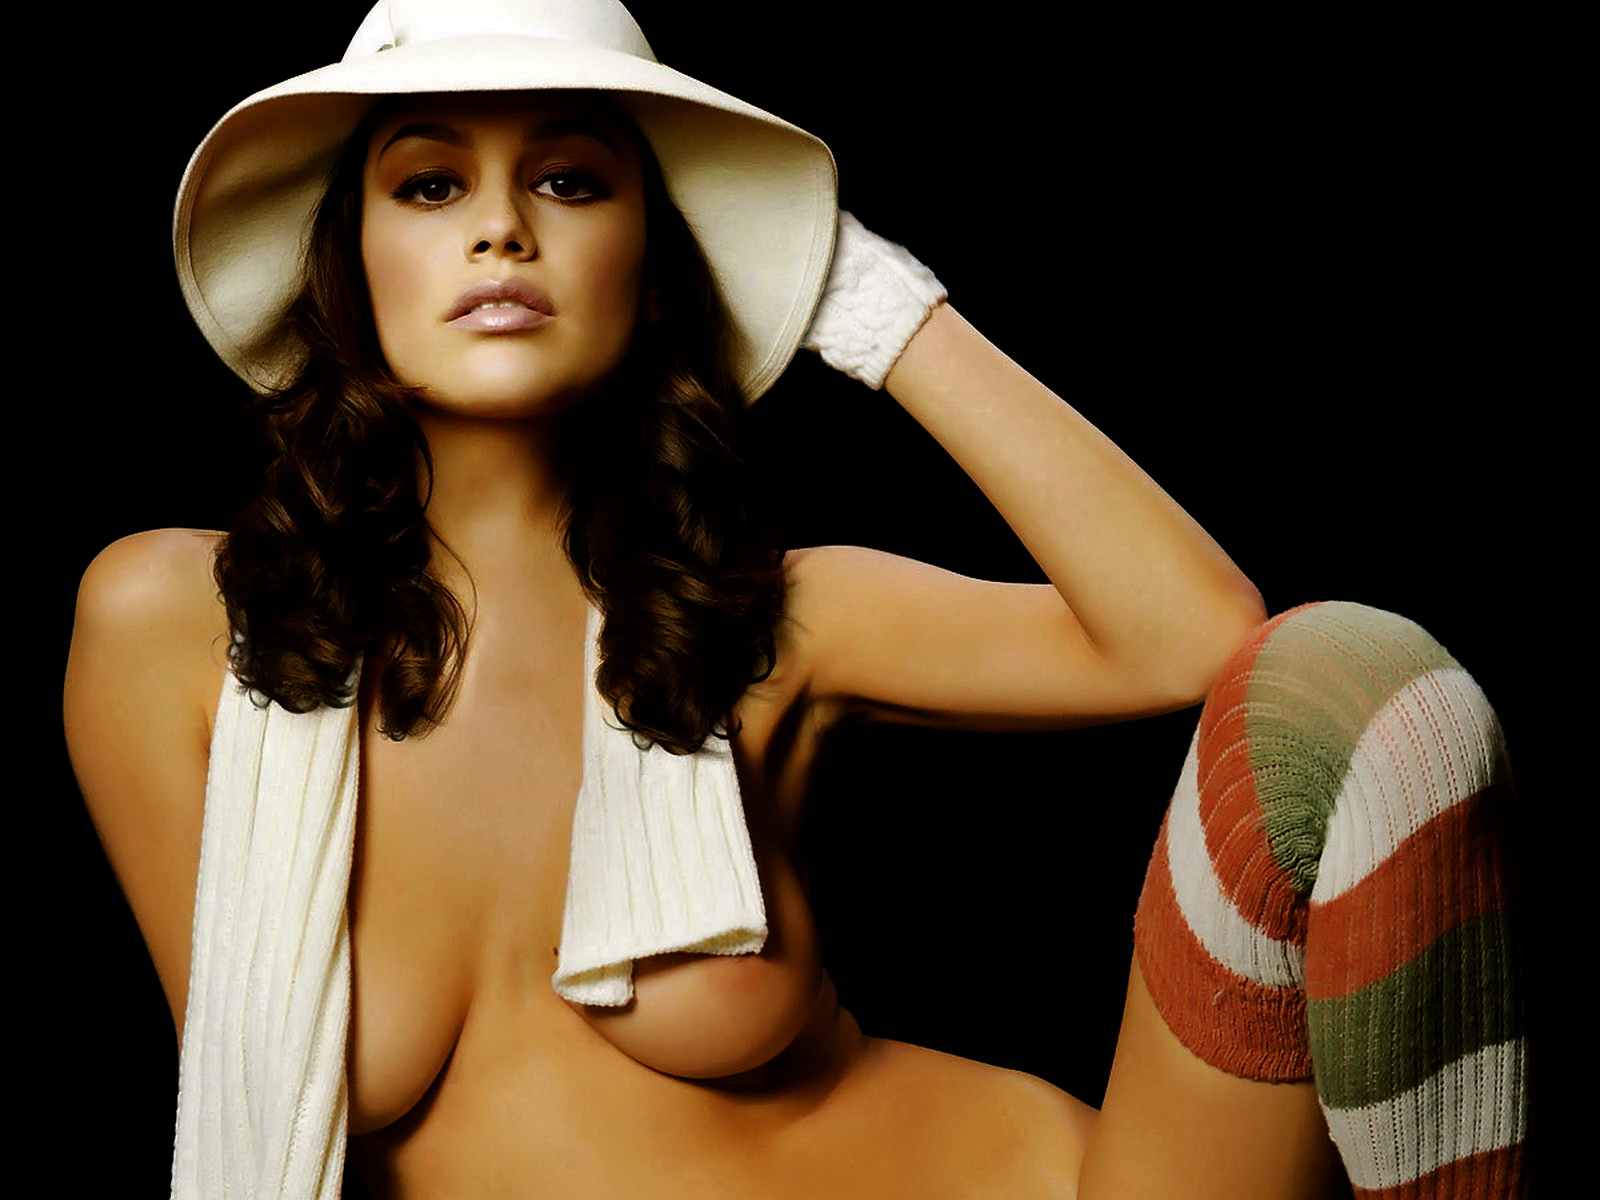 Rachel Bilson nude in Maxim photo shoot big boobs trimmed pussy beauty ...